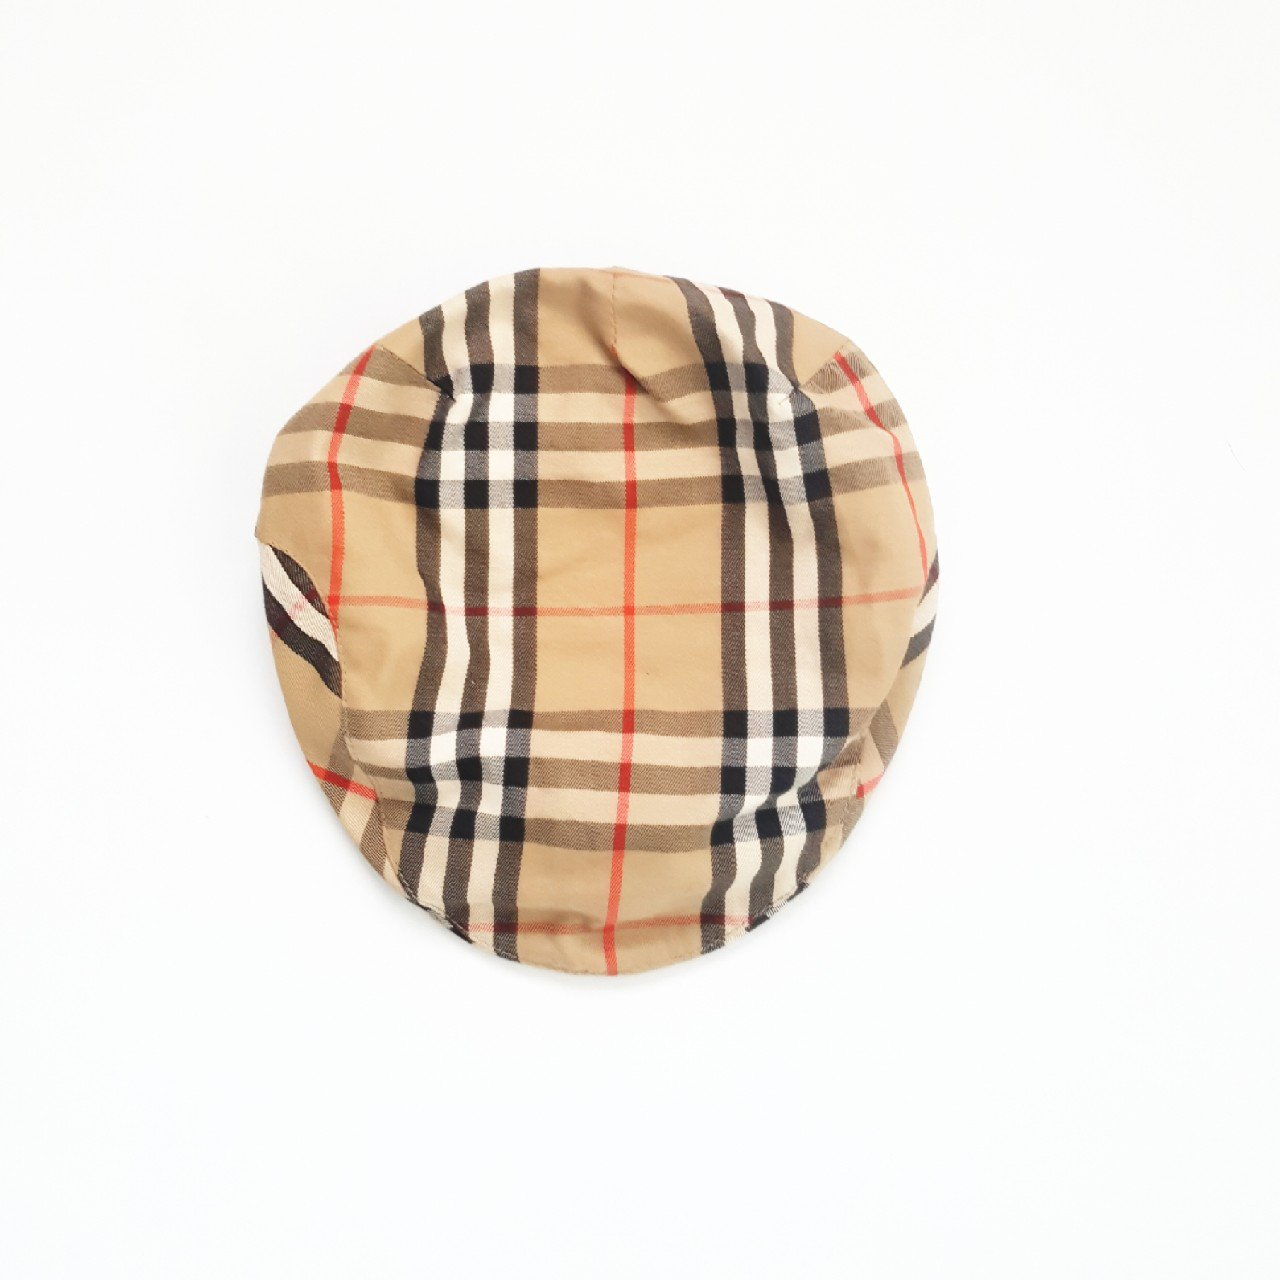 Vintage Burberry Flat cap. Look a right geezer in condition - Depop 2e5f5e03824